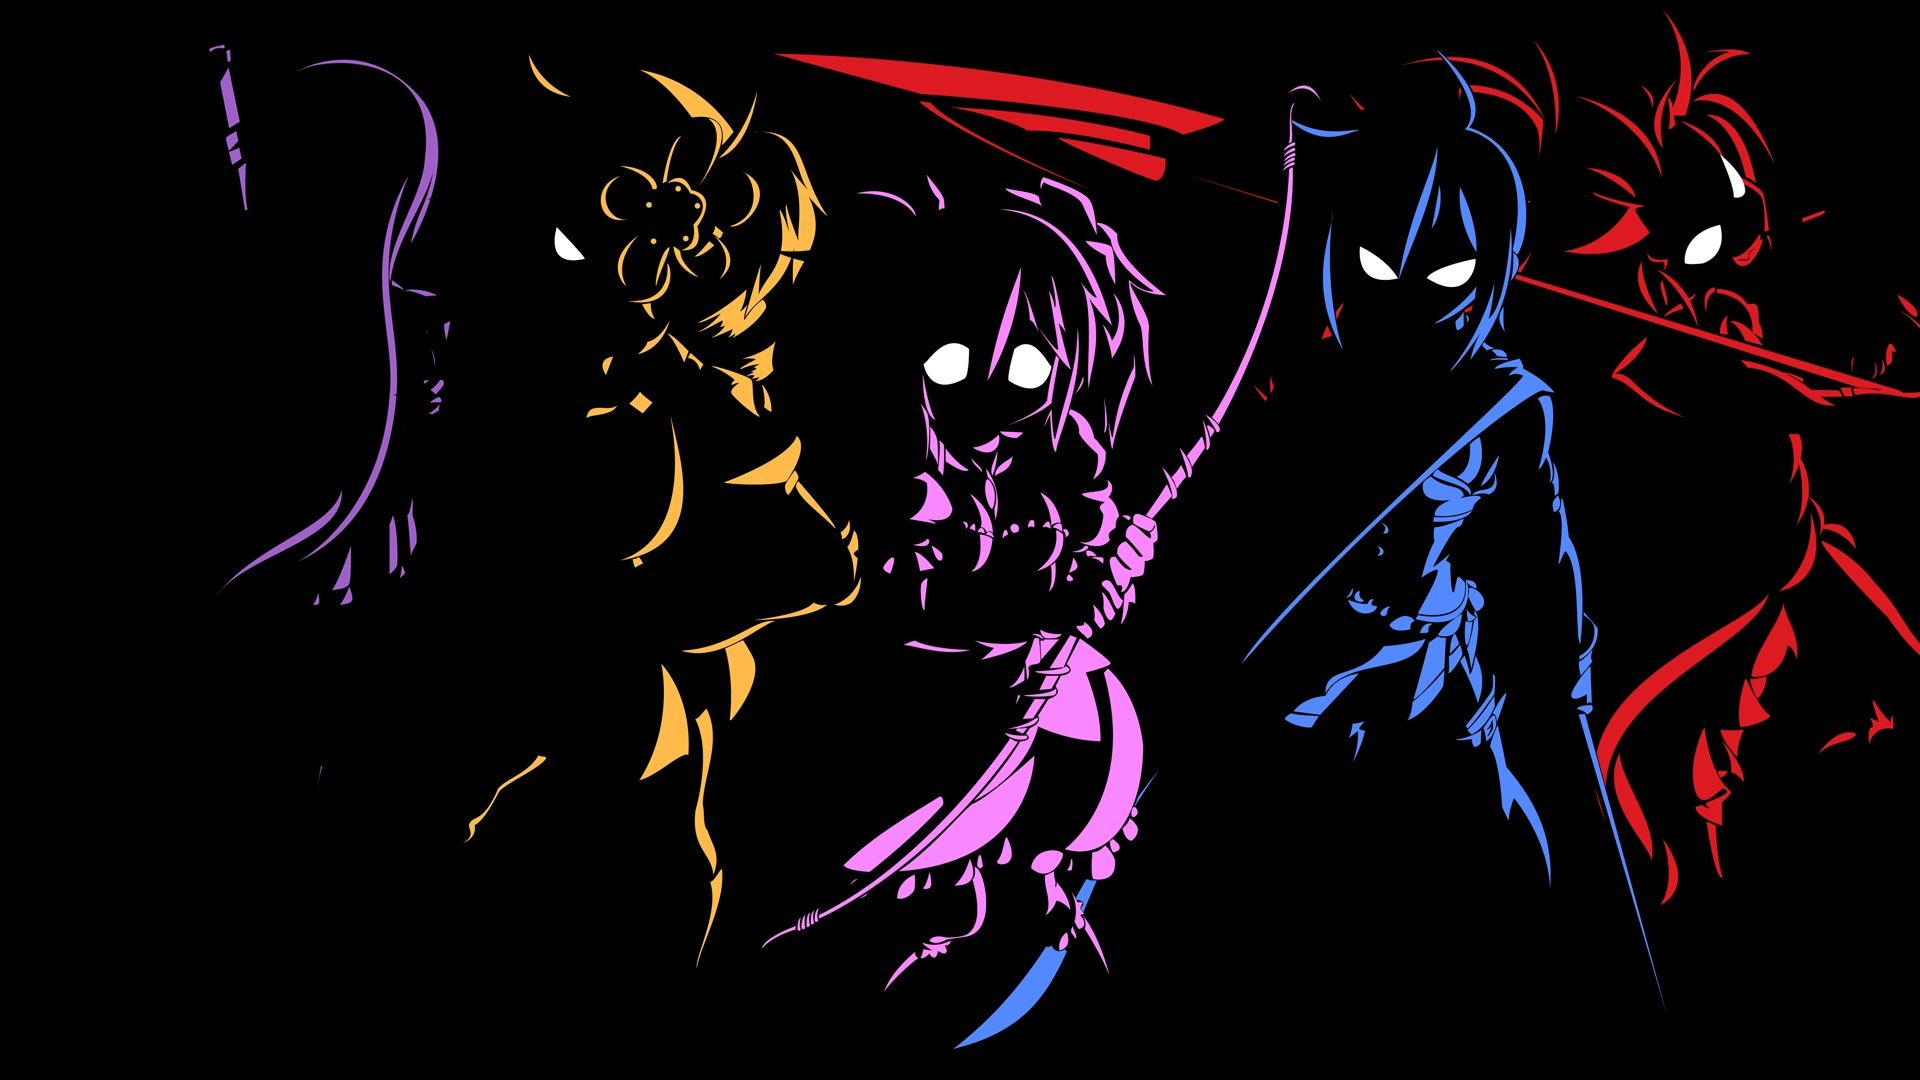 Anime Characters Outline Black Wallpaper Cool anime